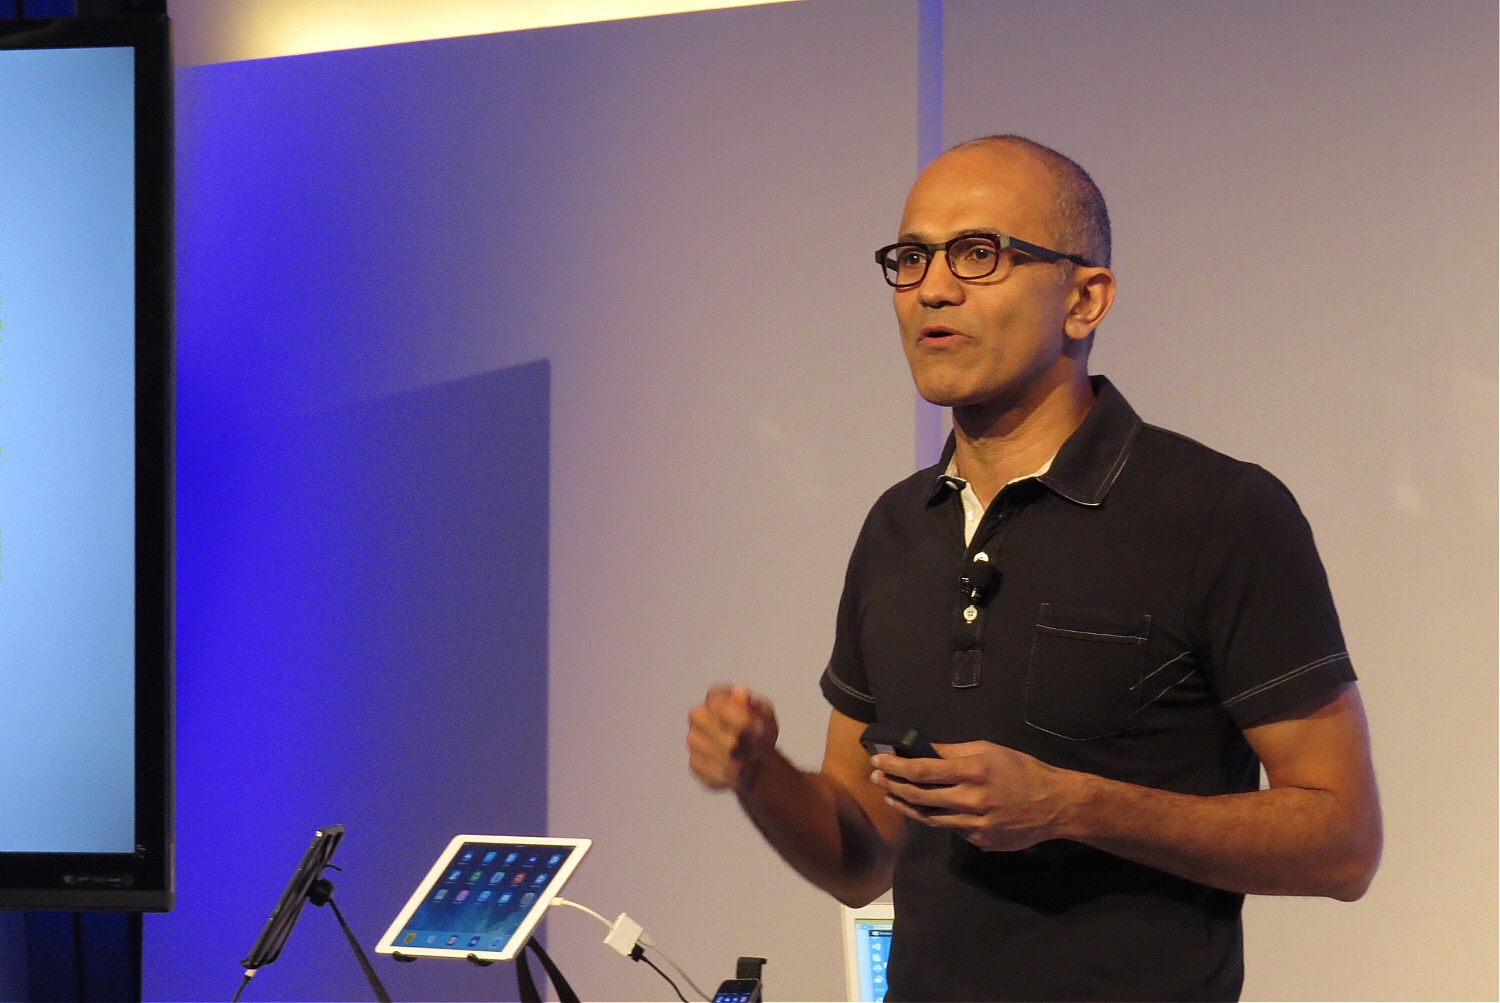 Microsoft CEO Satya Nadella at the company's press event in San Francisco on March 27, 2014